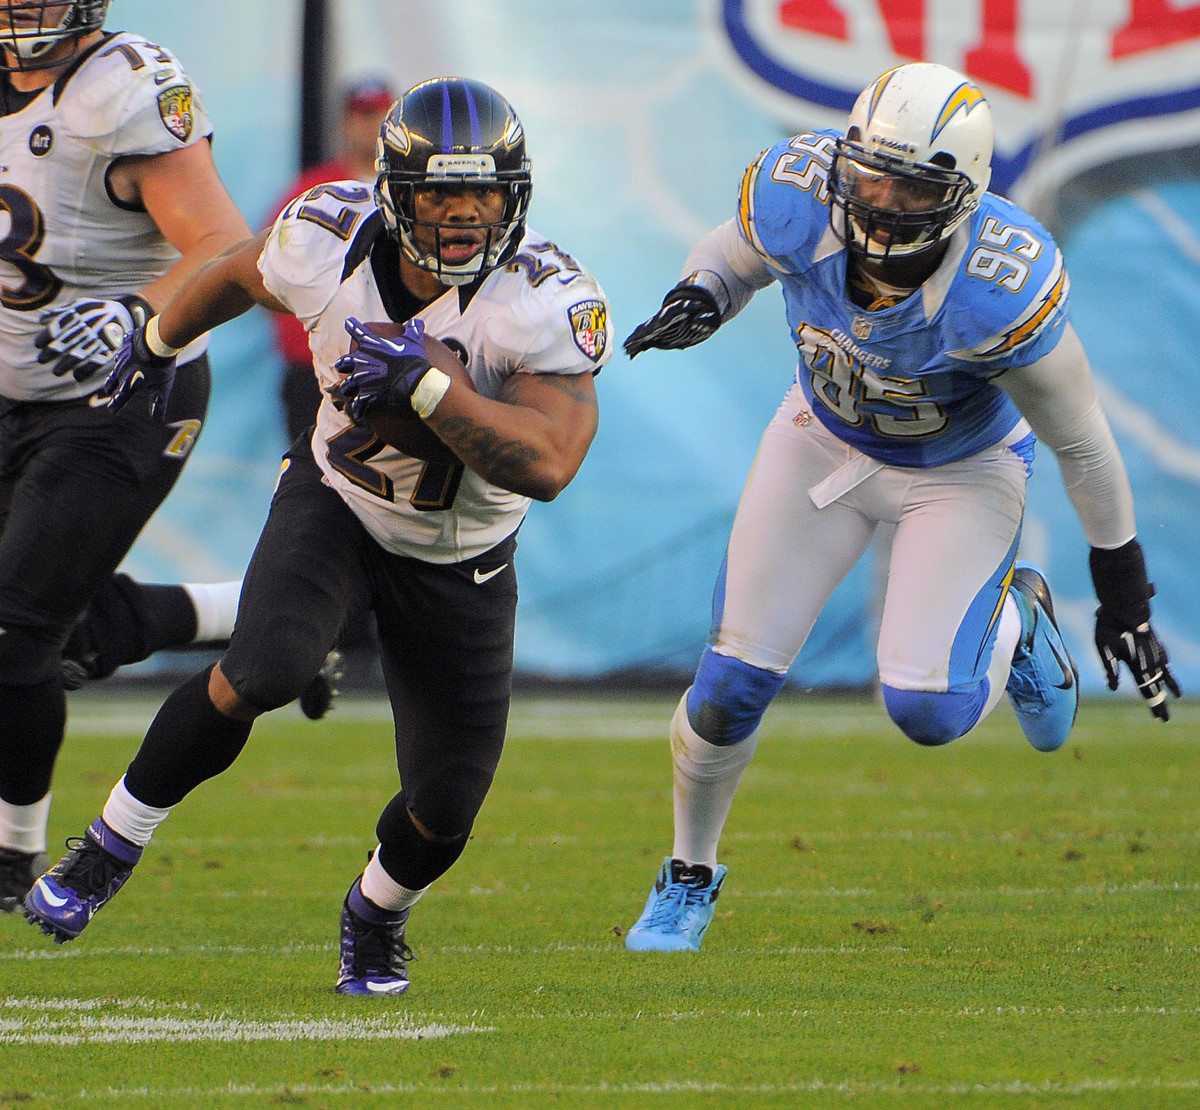 Rough Cut: A raw edit from the Ravens 16-13 win over the San Diego Chargers in overtime